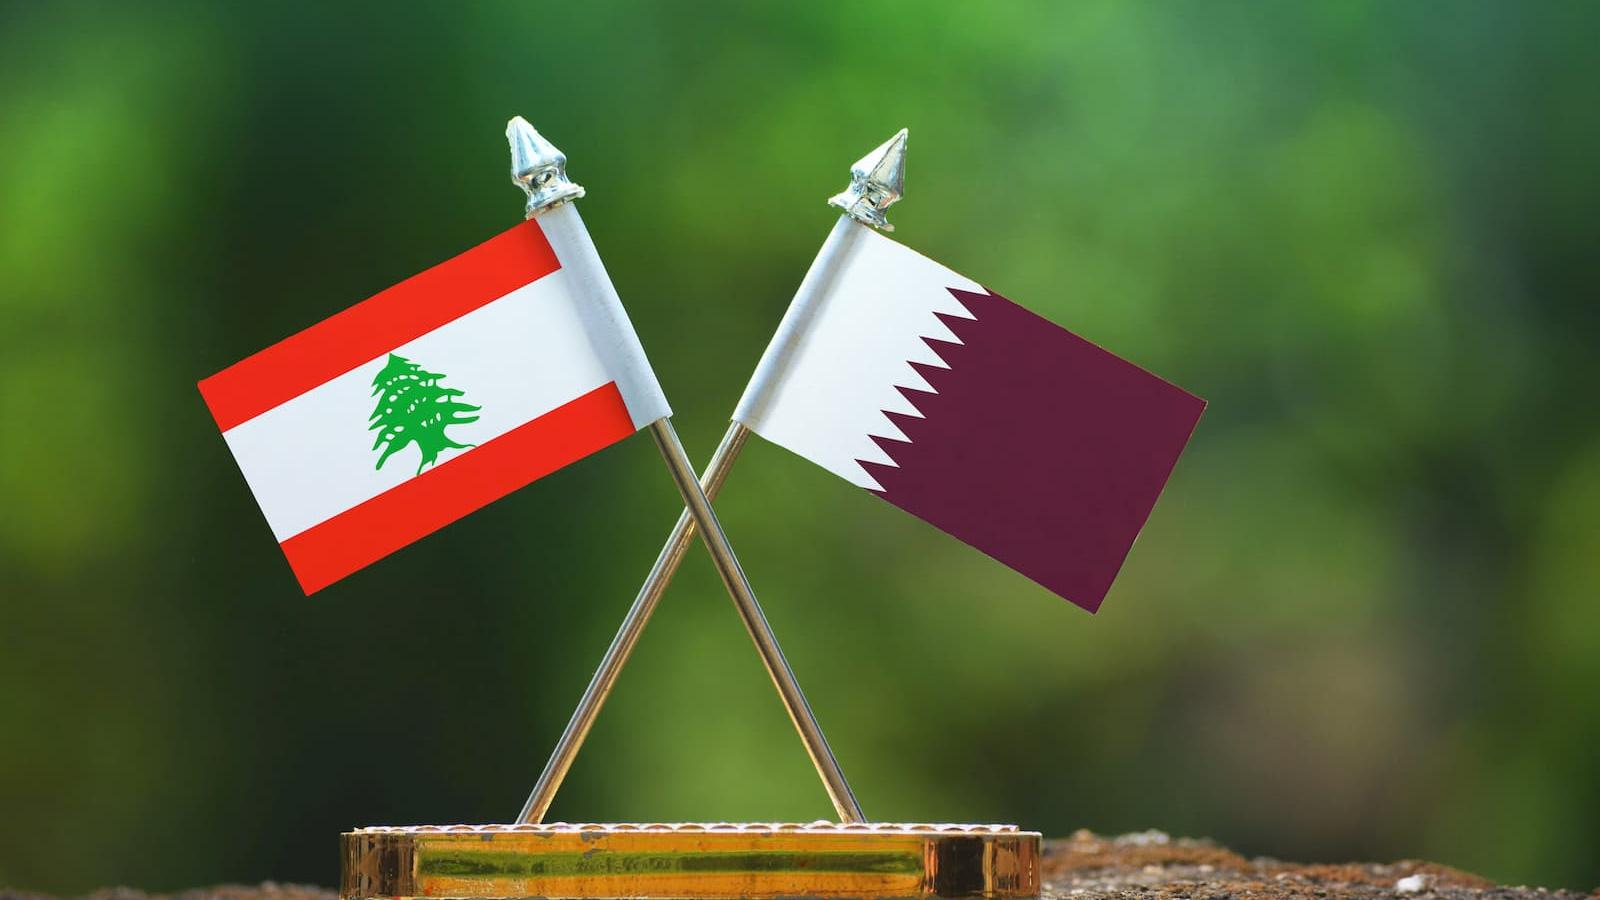 Here are some donation initiatives in Qatar to support Lebanon